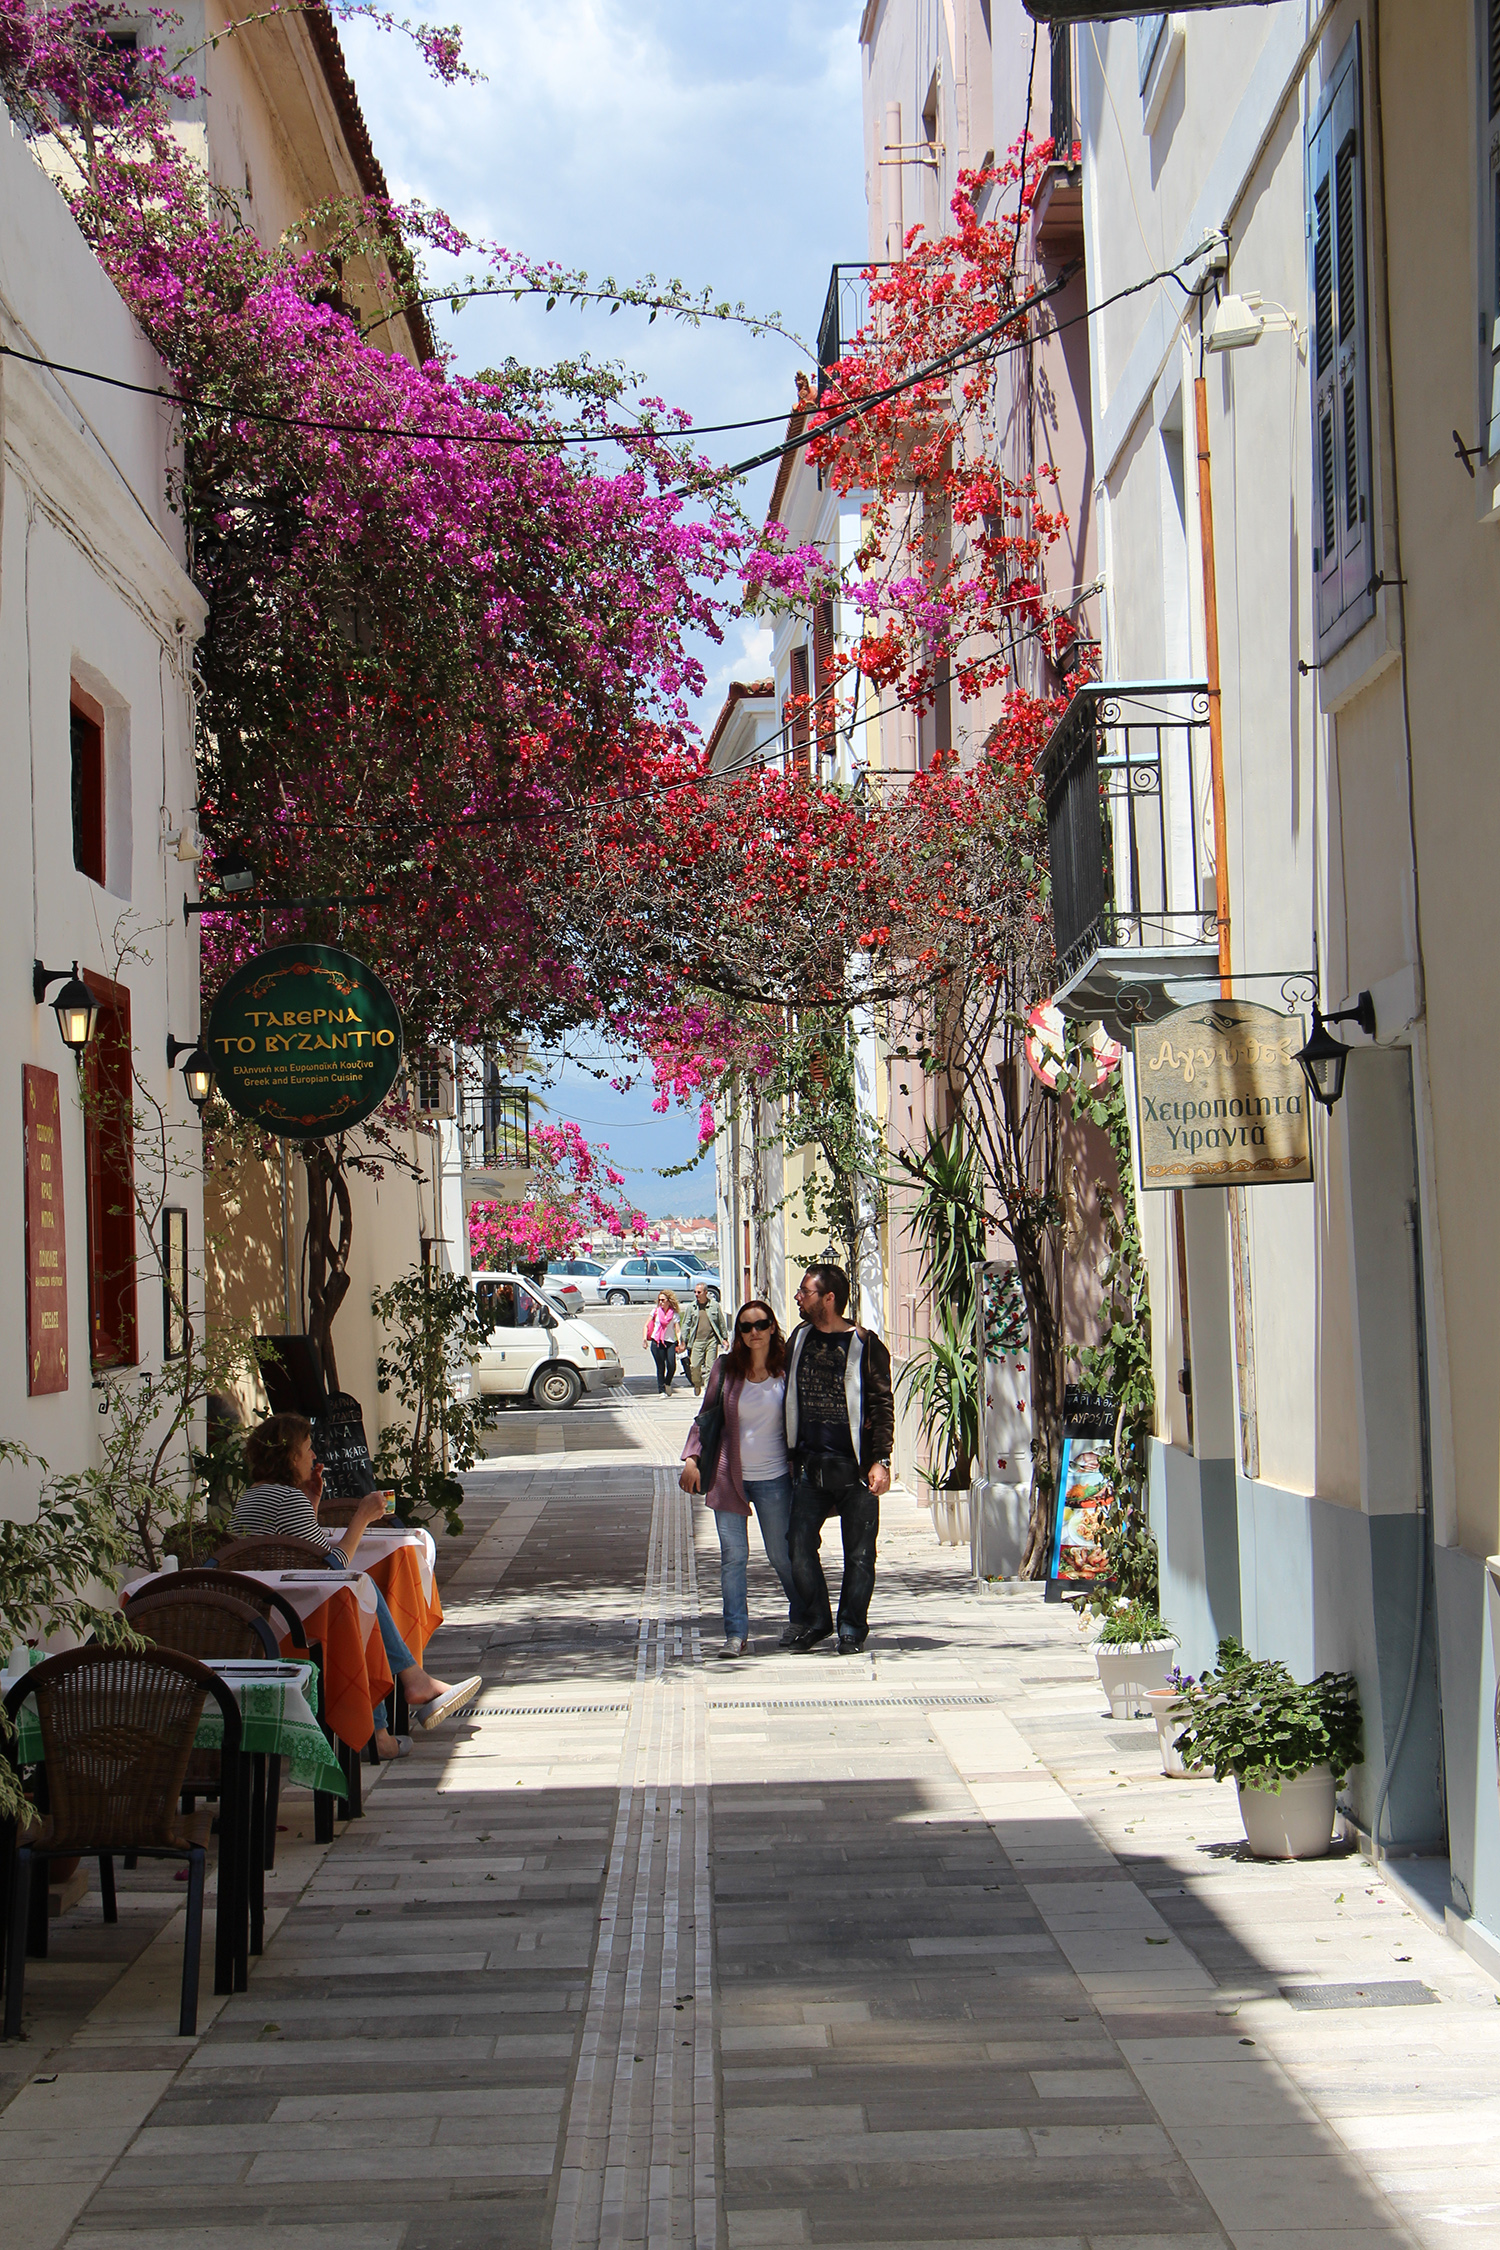 nafplio greece romantic streets